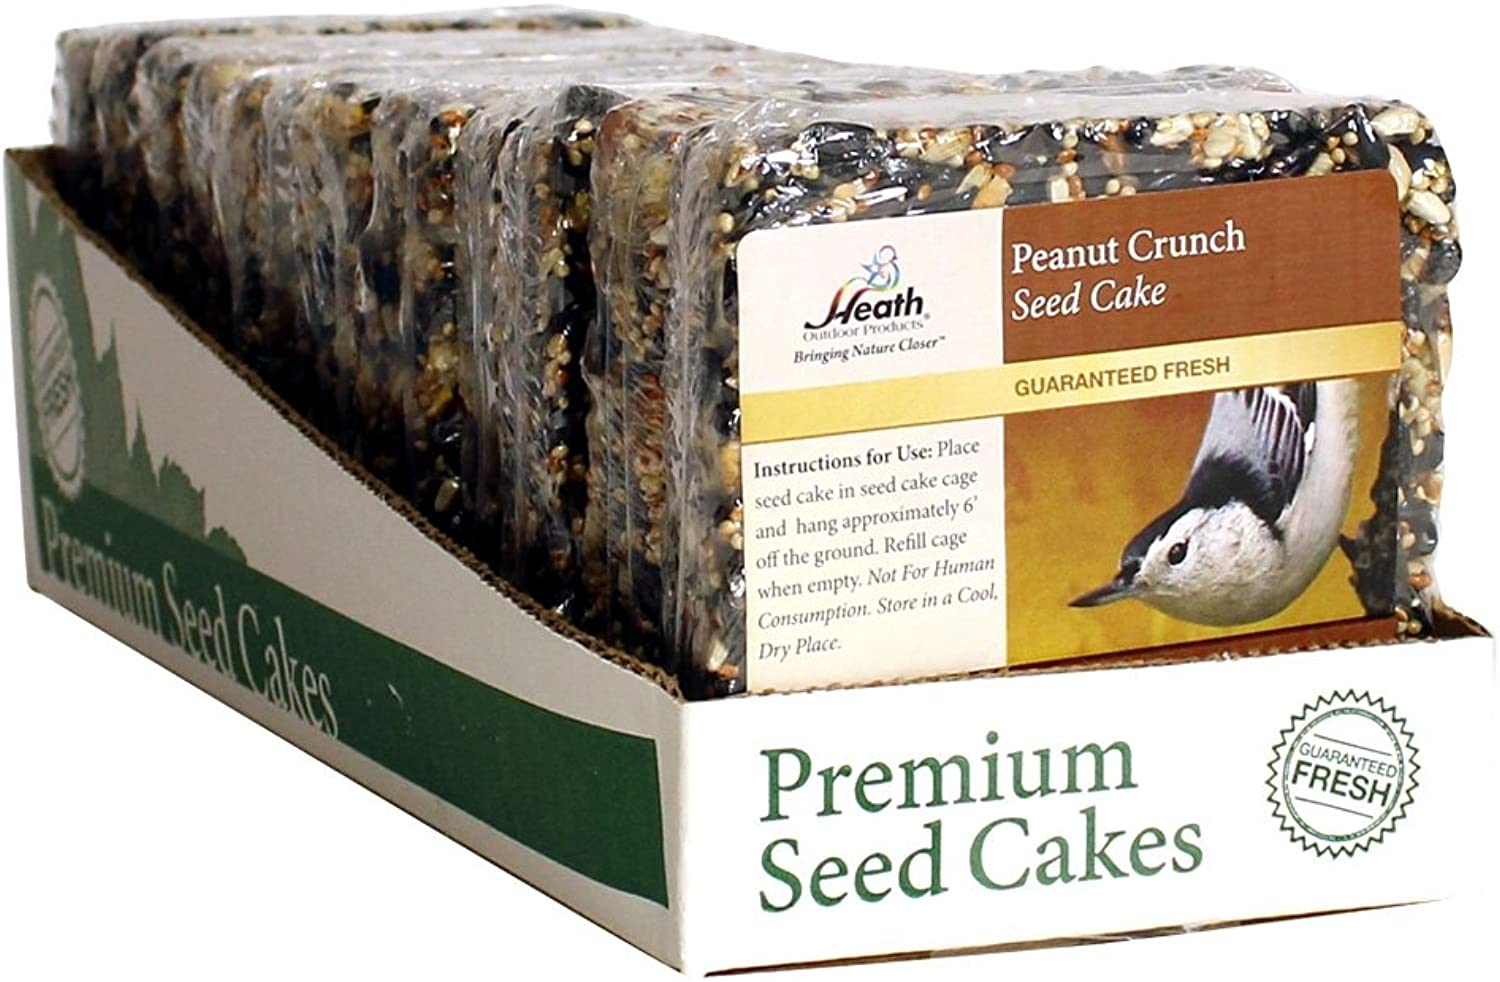 Heath Outdoor Products SC22 Peanut Crunch Seed Cake, 7Ounce 12pack